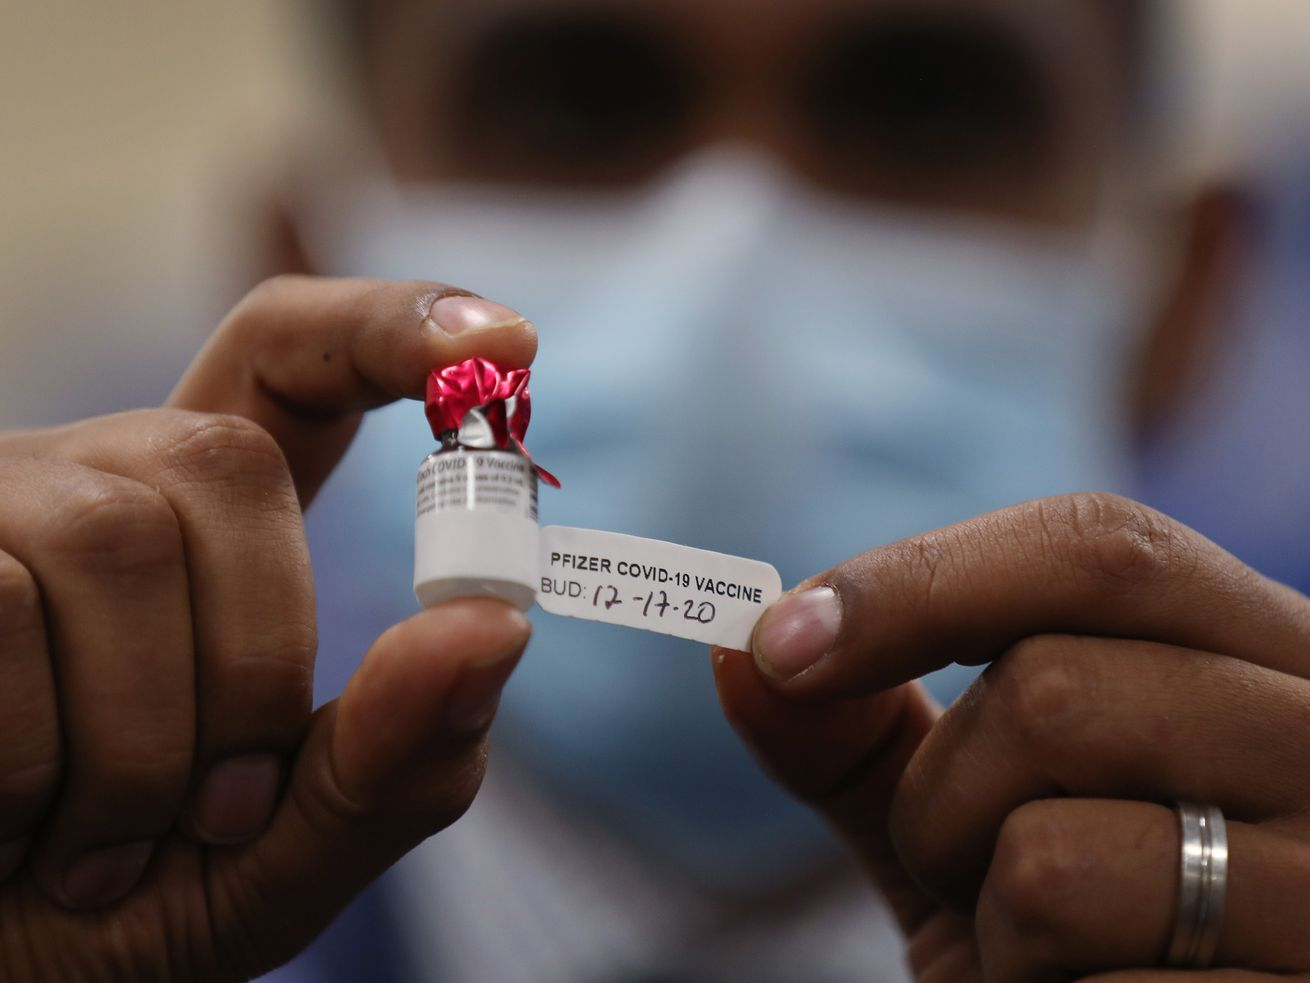 A man holding up a vaccine vial.